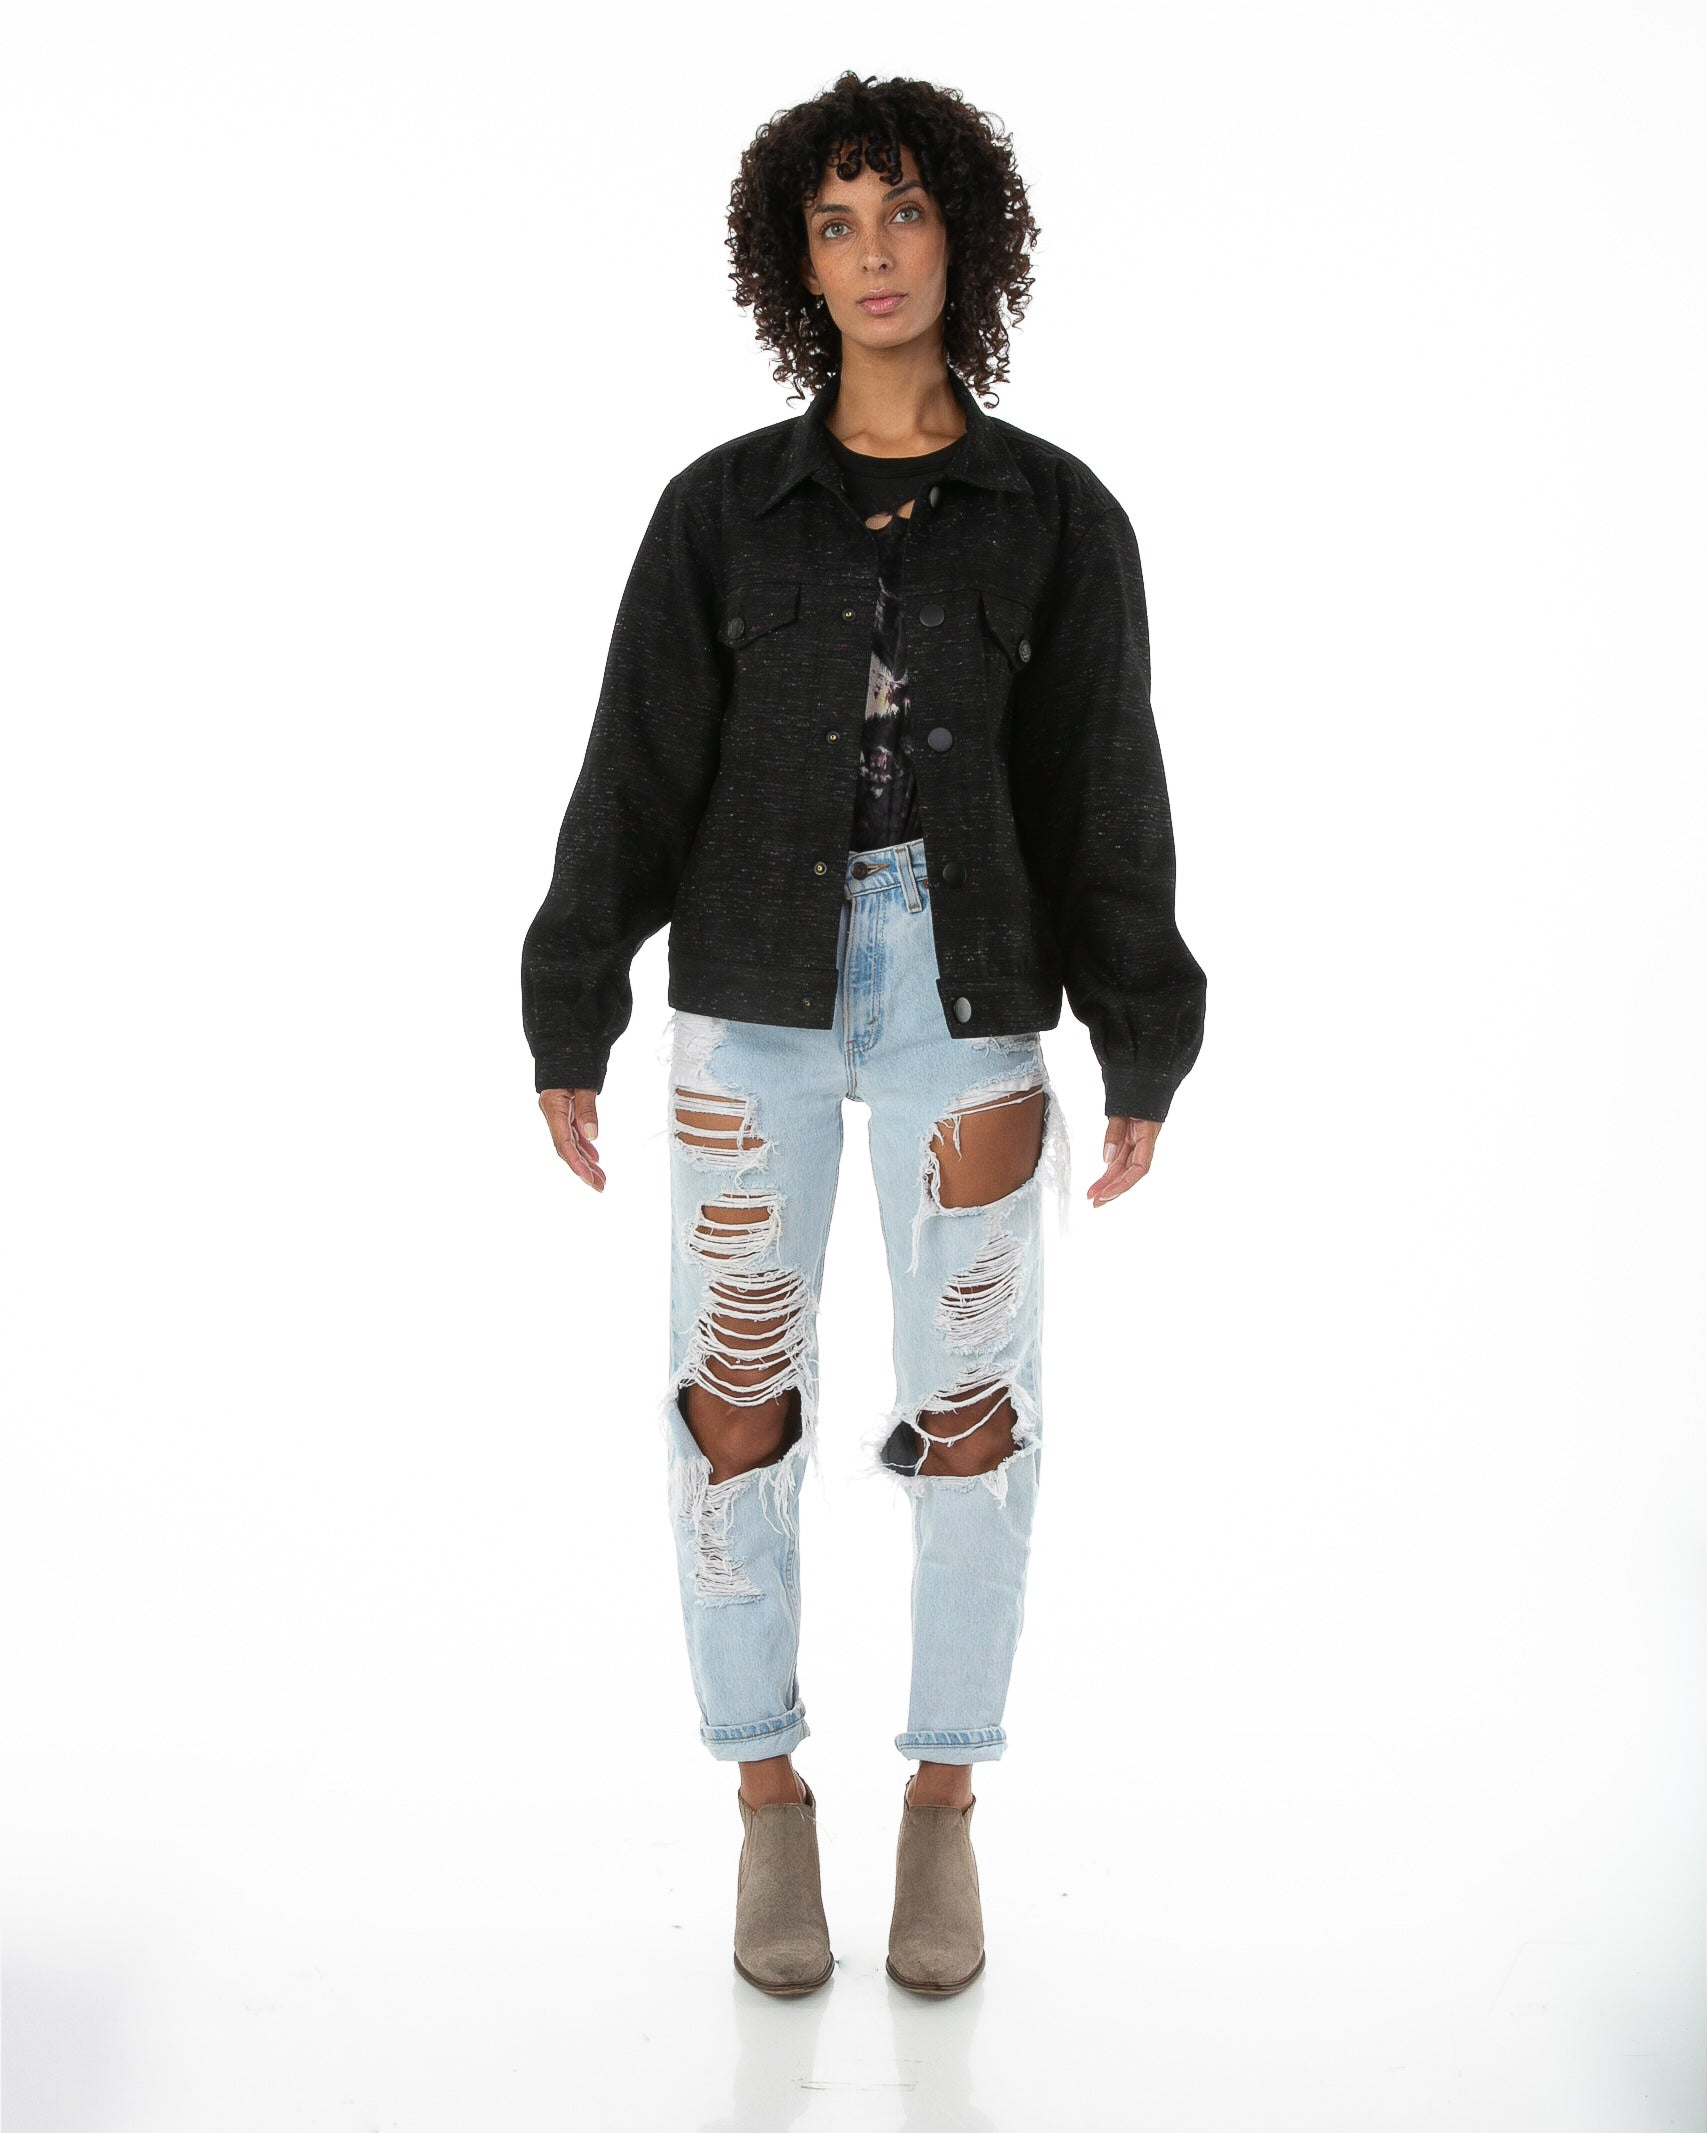 Front of female model wearing Reversible Parlor black denim jacket